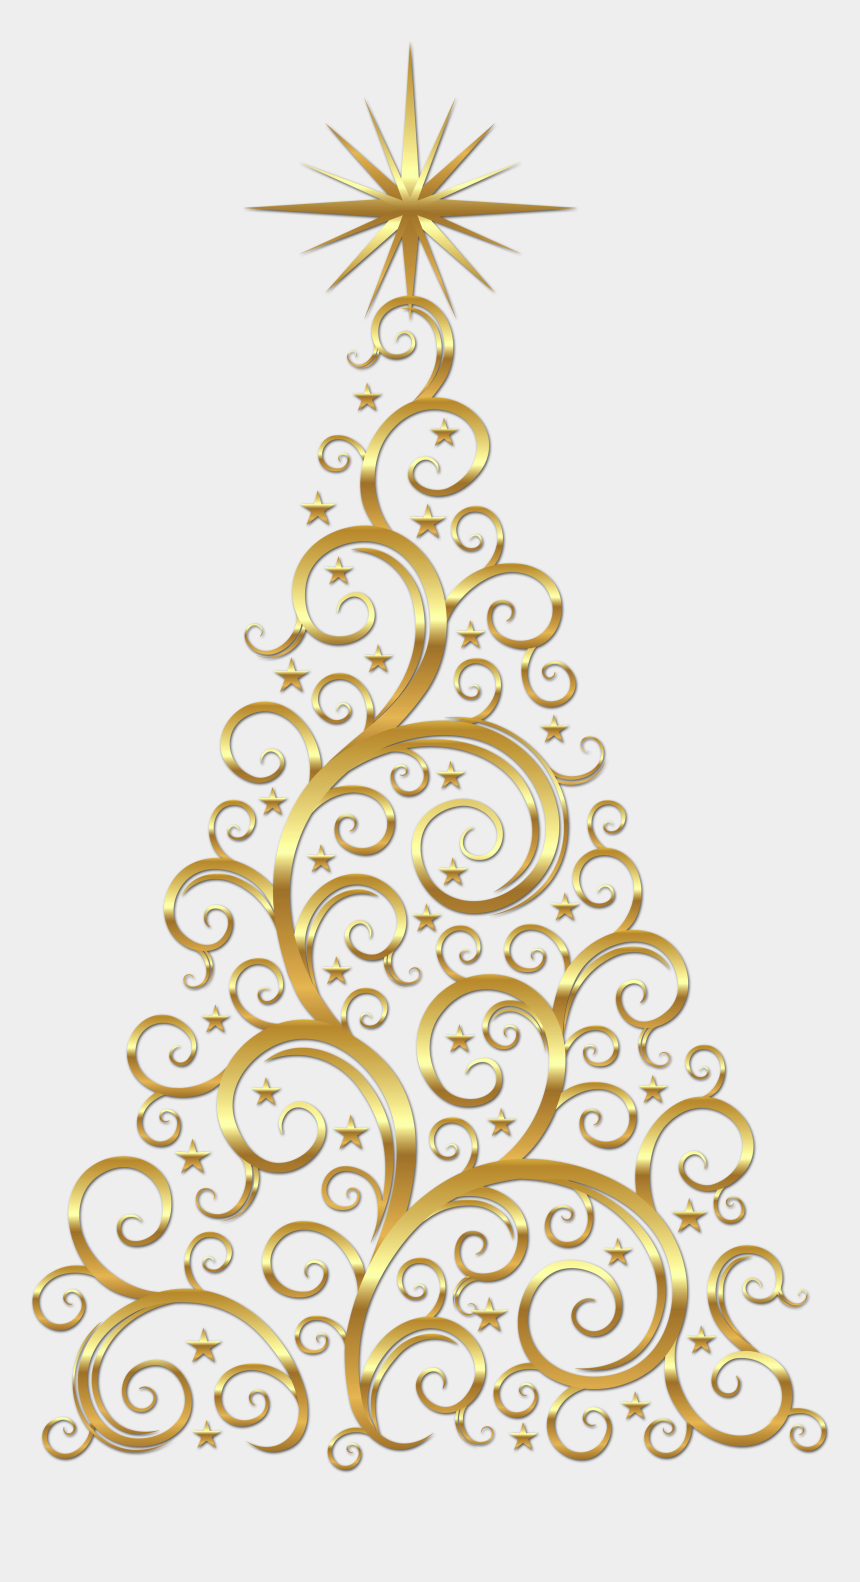 christmas tree clipart, Cartoons - Christmas Tree Clip Art - Gold Christmas Tree Clipart